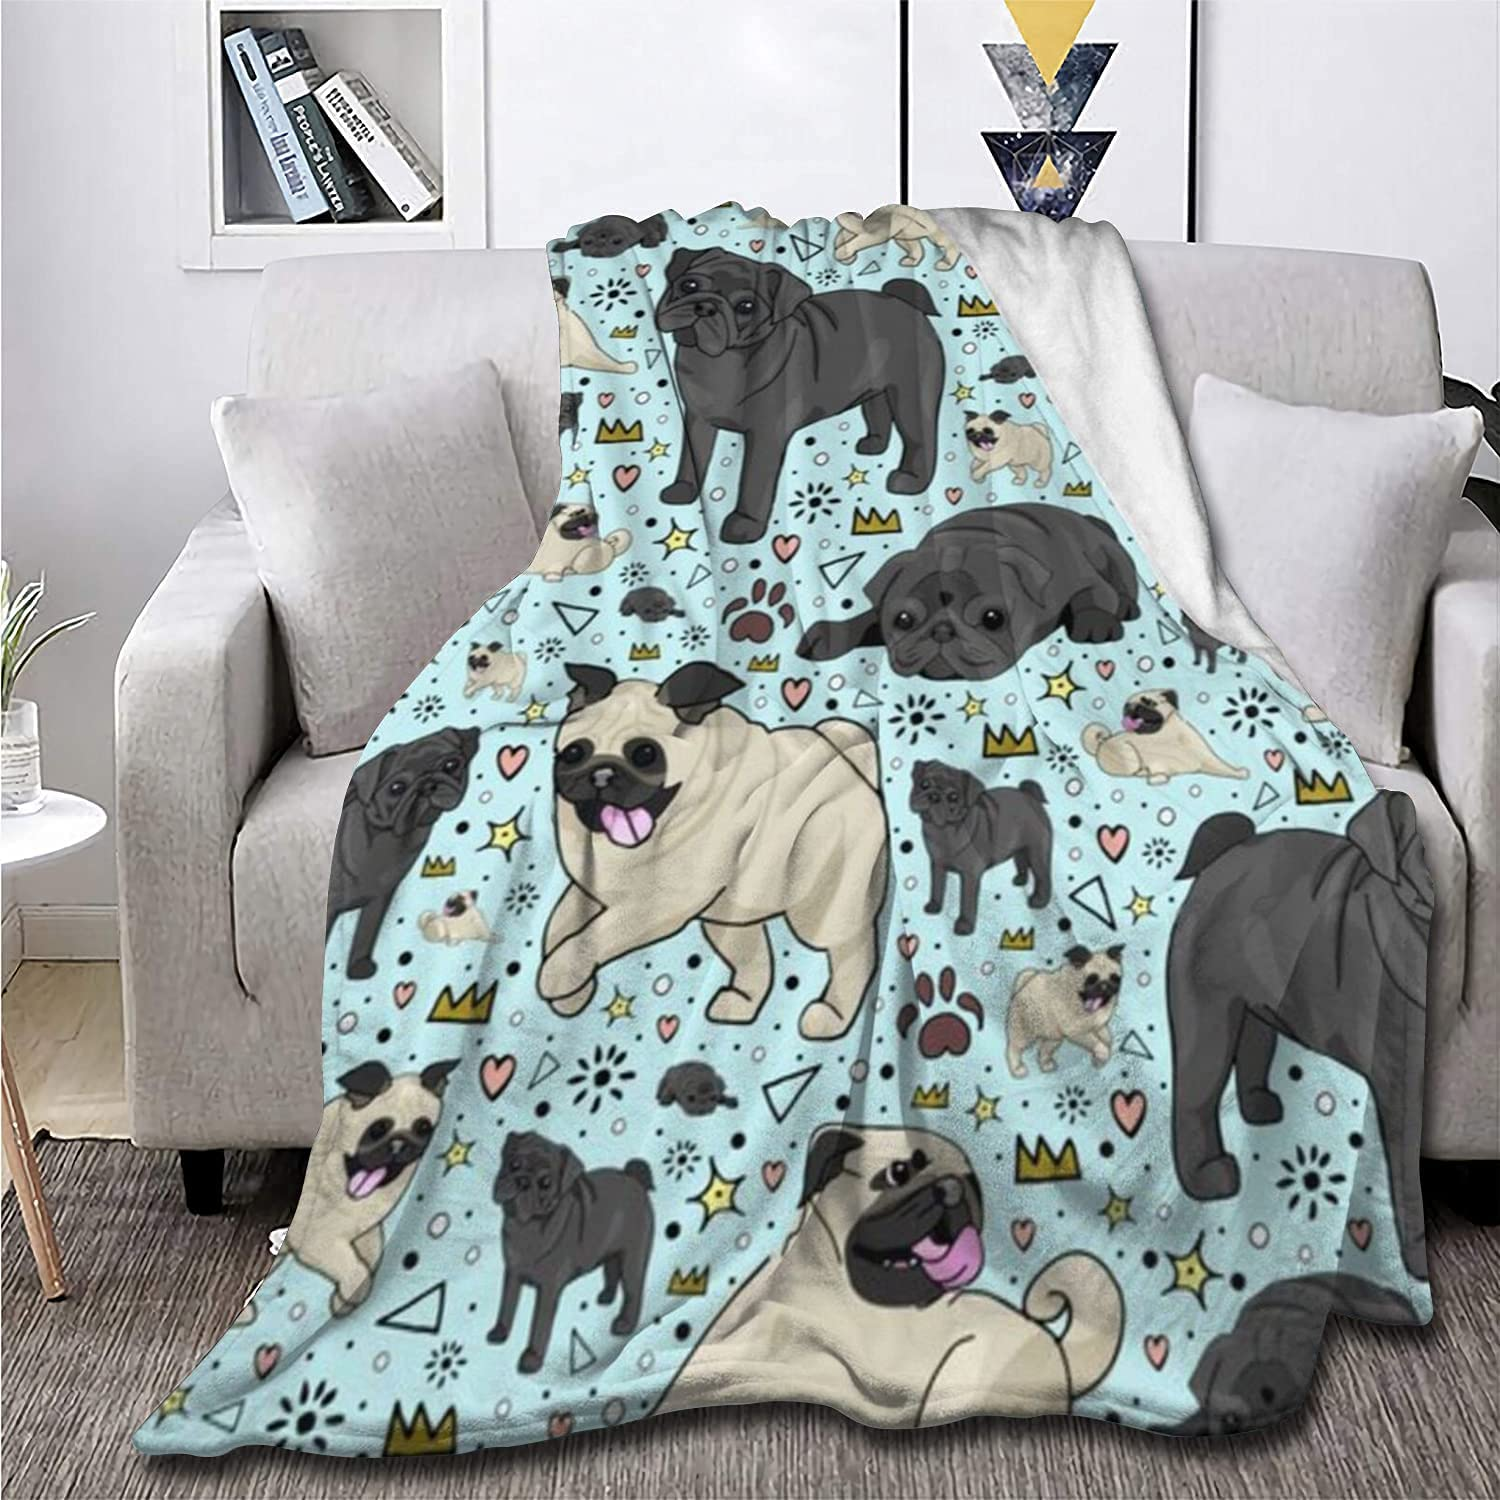 Cute Pug Blanket Puppy Inventory cleanup Free Shipping Cheap Bargain Gift selling sale Dog Gift Boys Fuzzy Kids Soft for